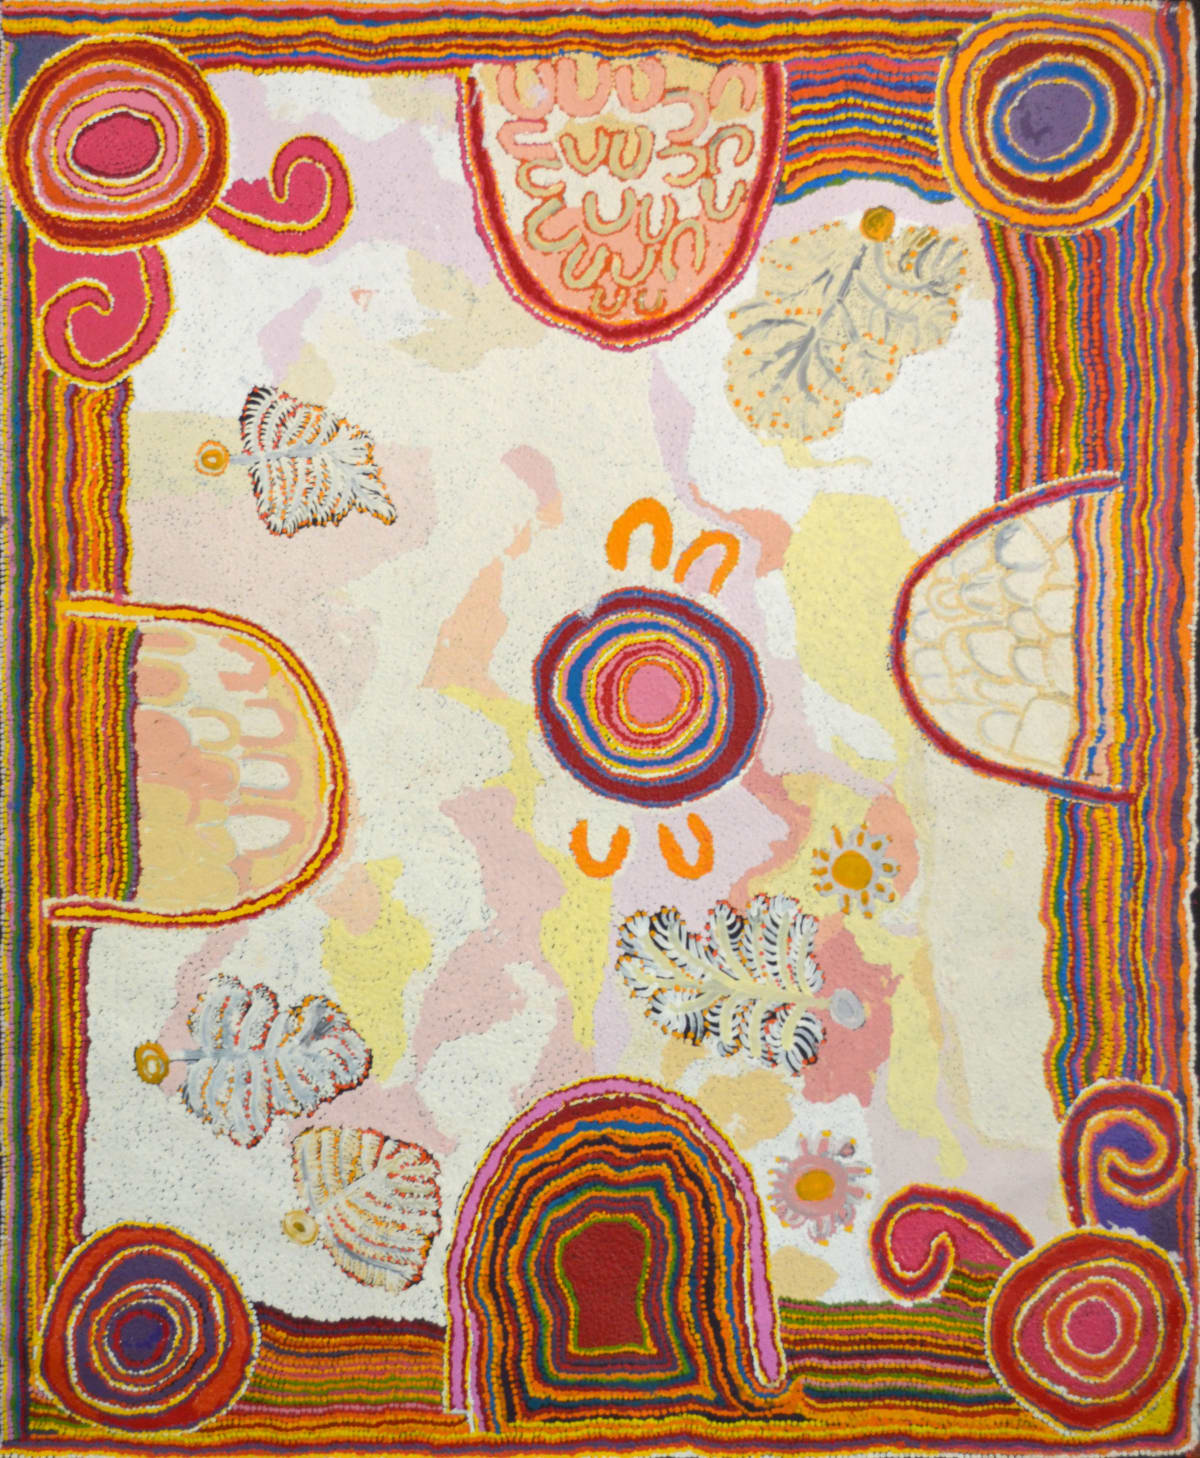 Puntjina Monica Watson Pukara acrylic on canvas 147 x 121 cm